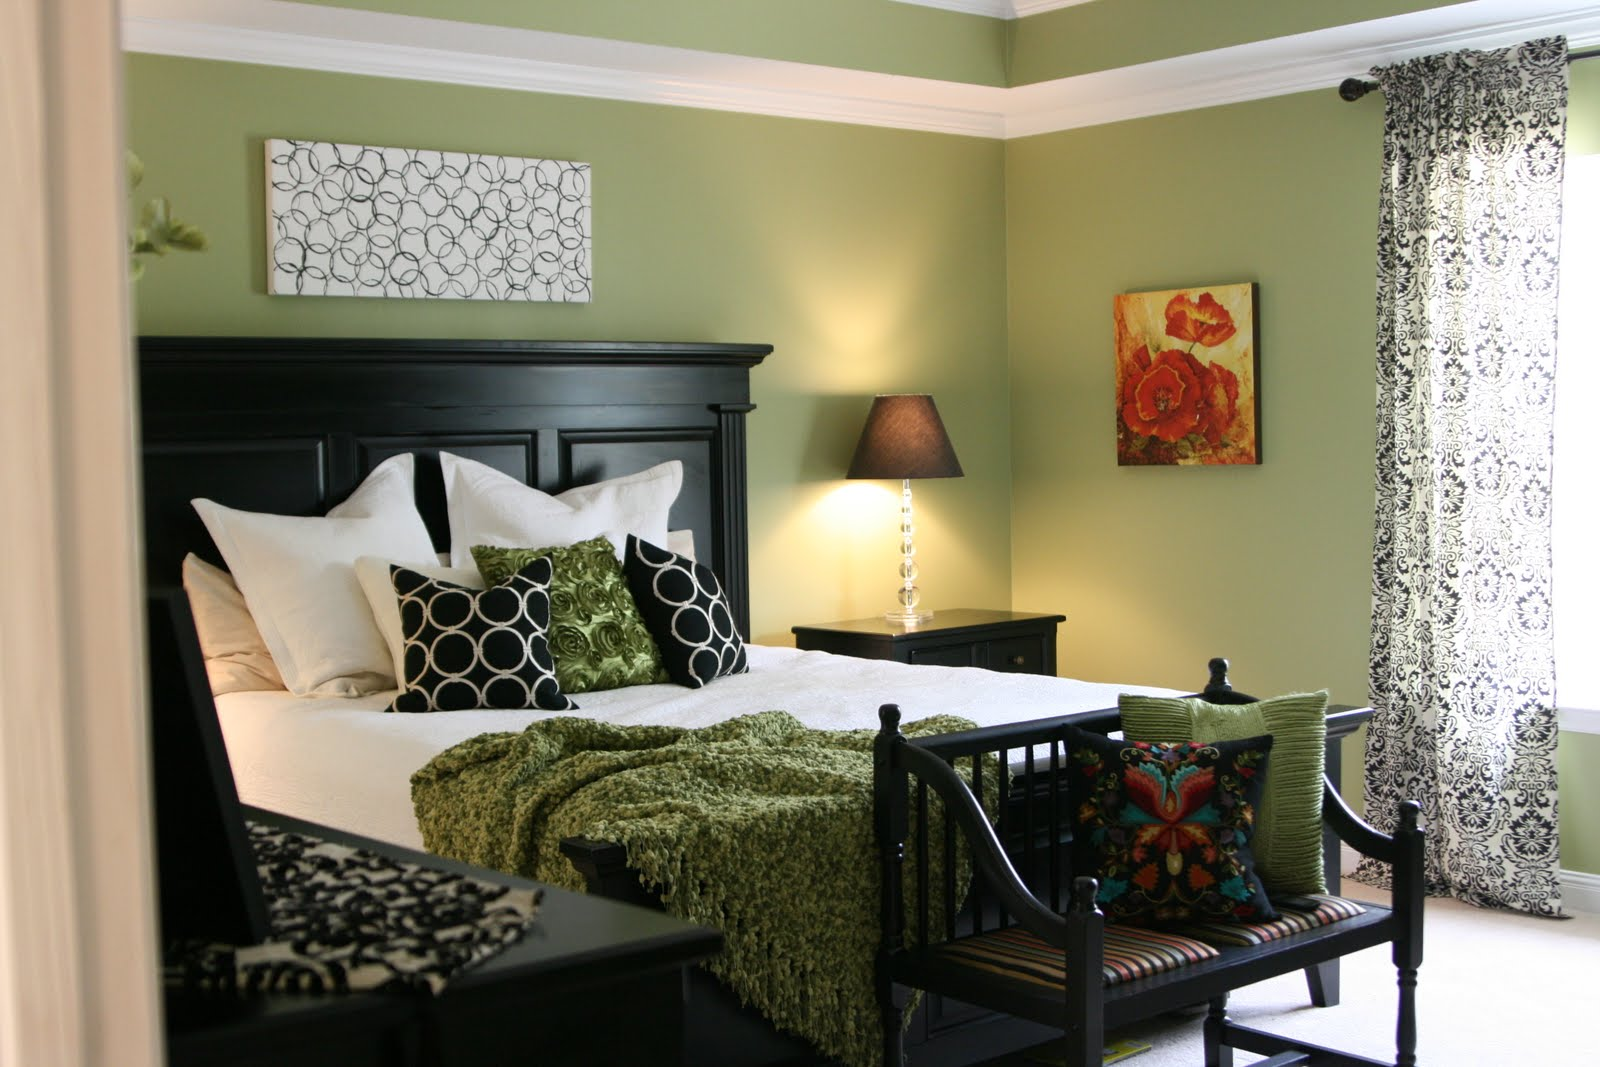 Best Sherwin Williams Paint Colors For A Master Bedroom